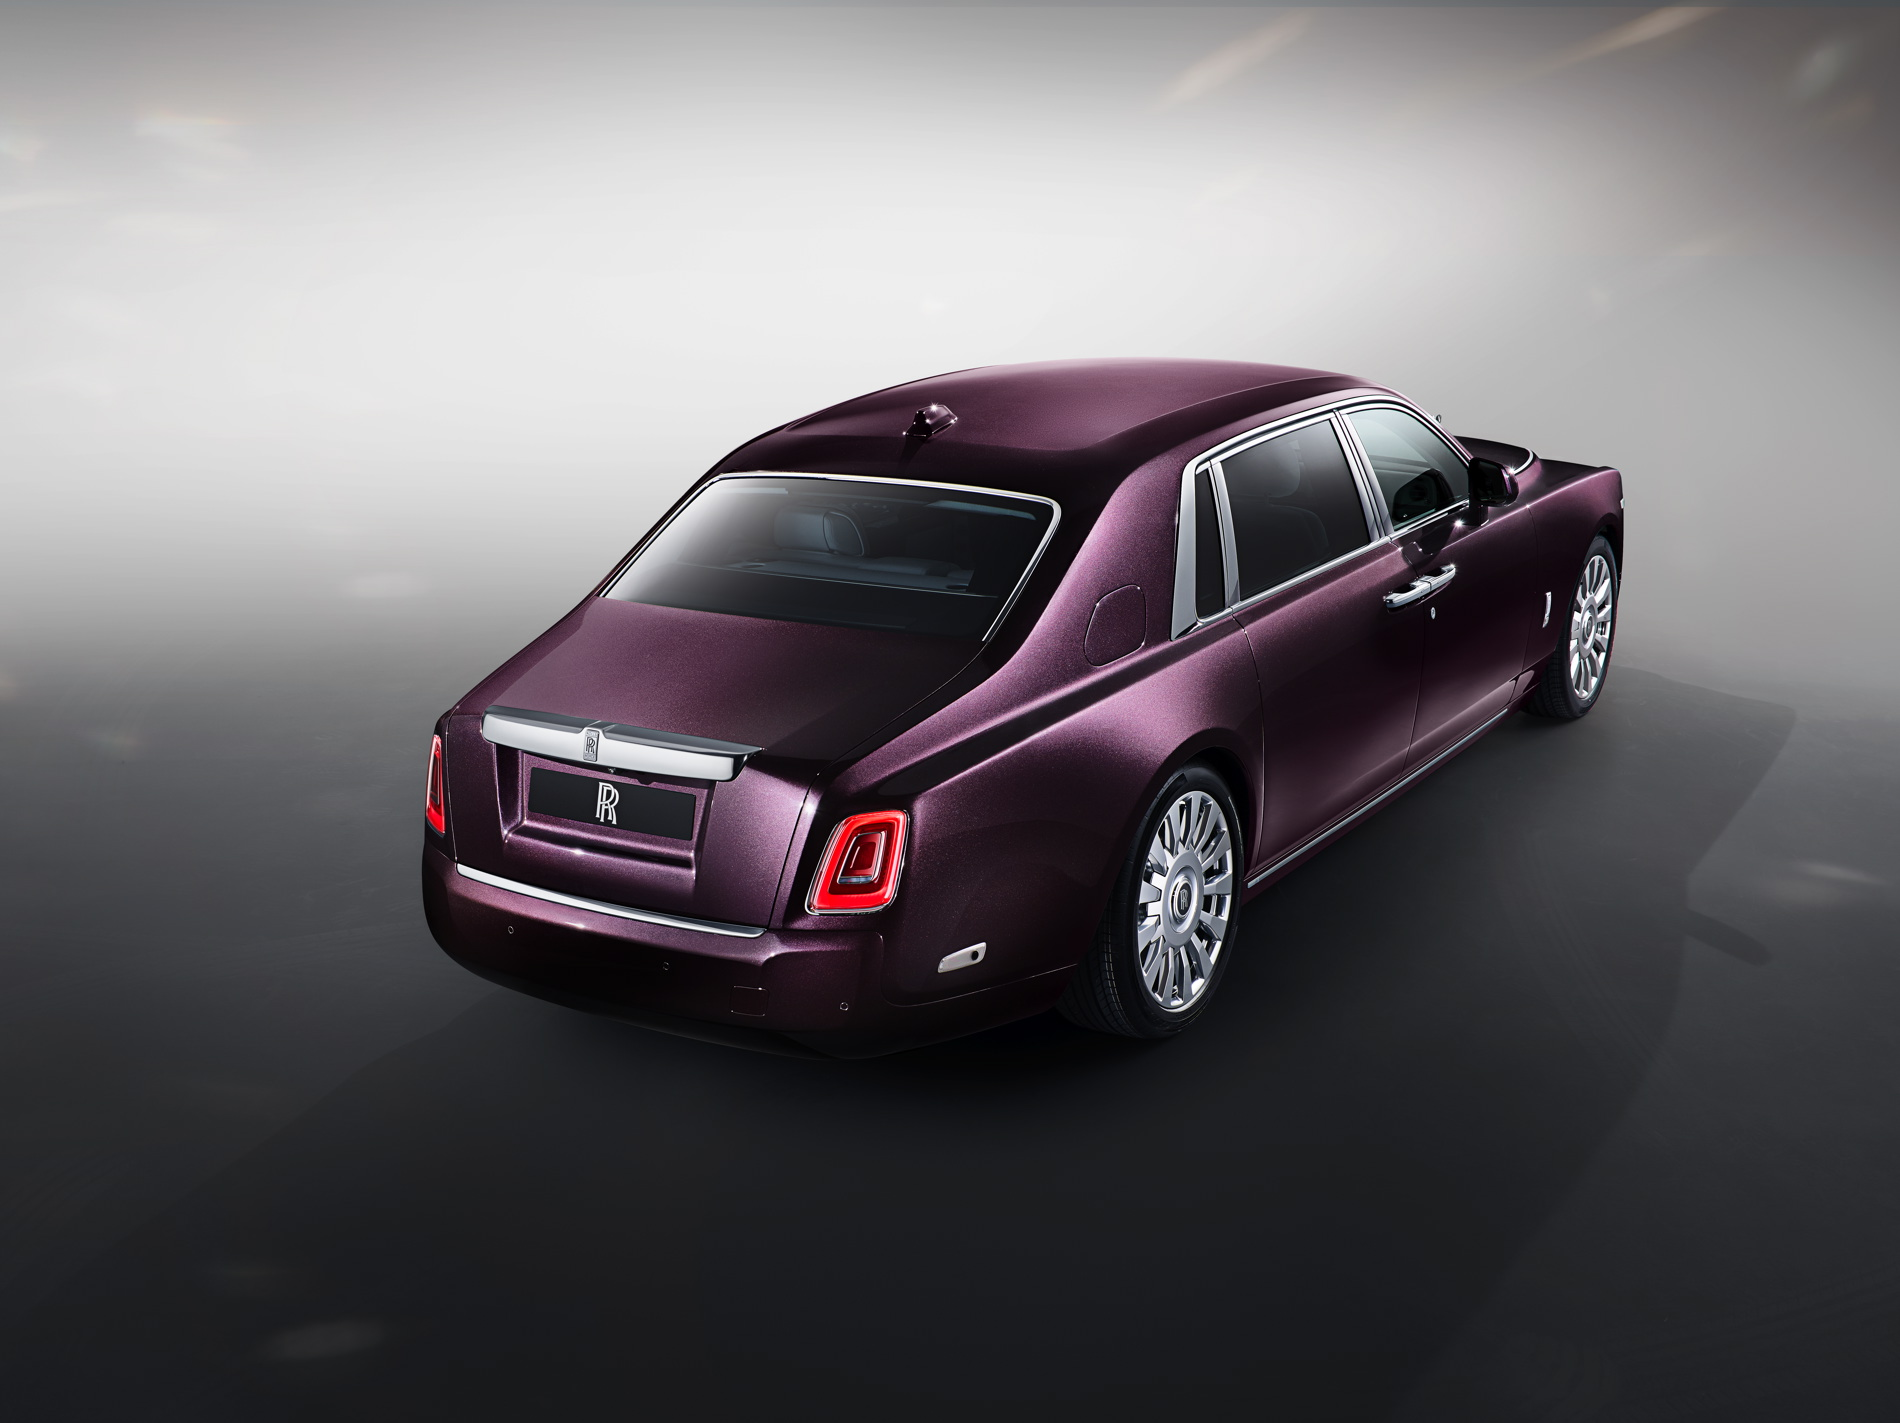 New Rolls Royce Phantom Extended Wheelbase Photo Gallery